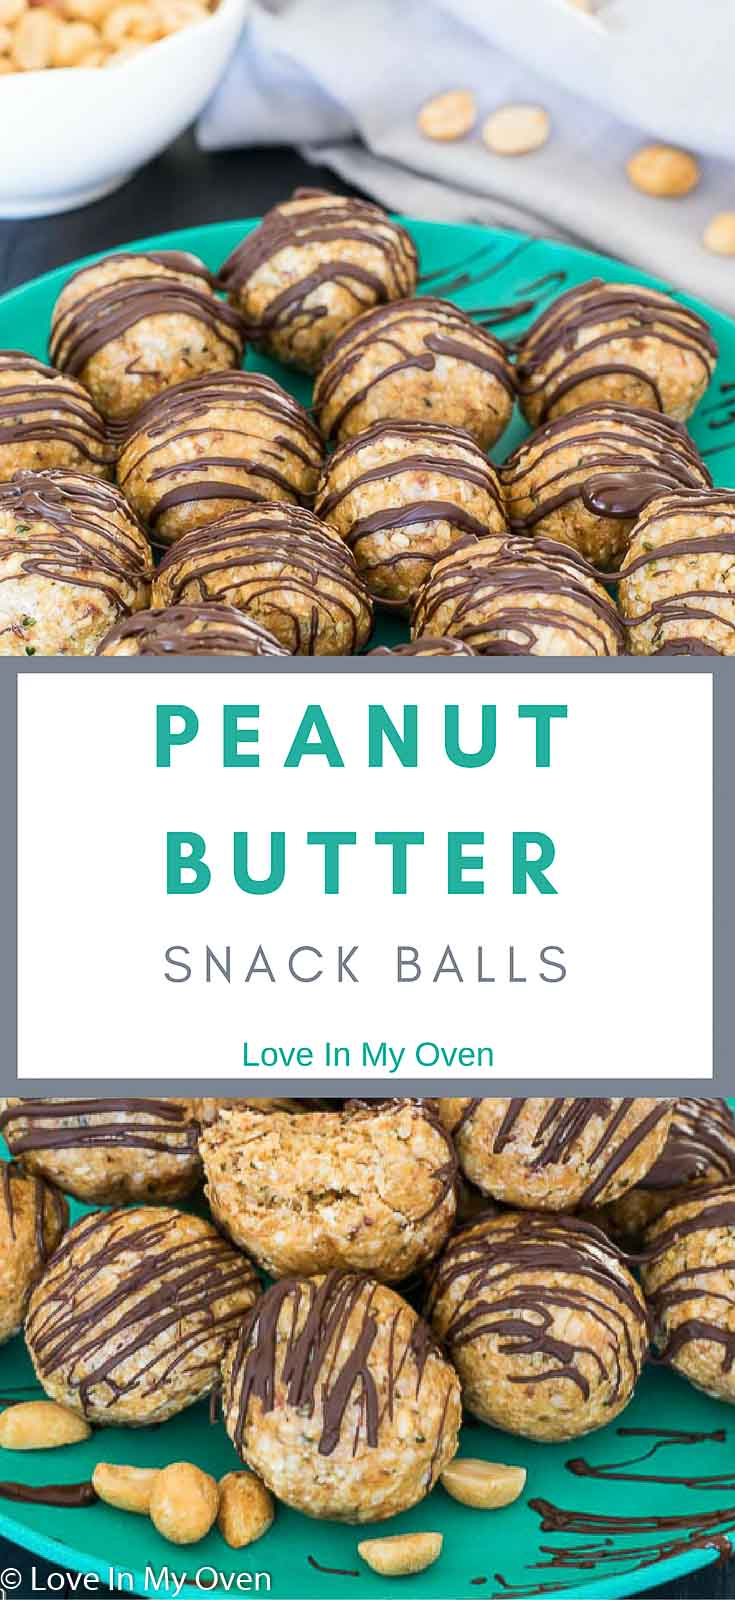 Naturally sweetened peanut butter snack balls - convenient, delicious and filled with protein!